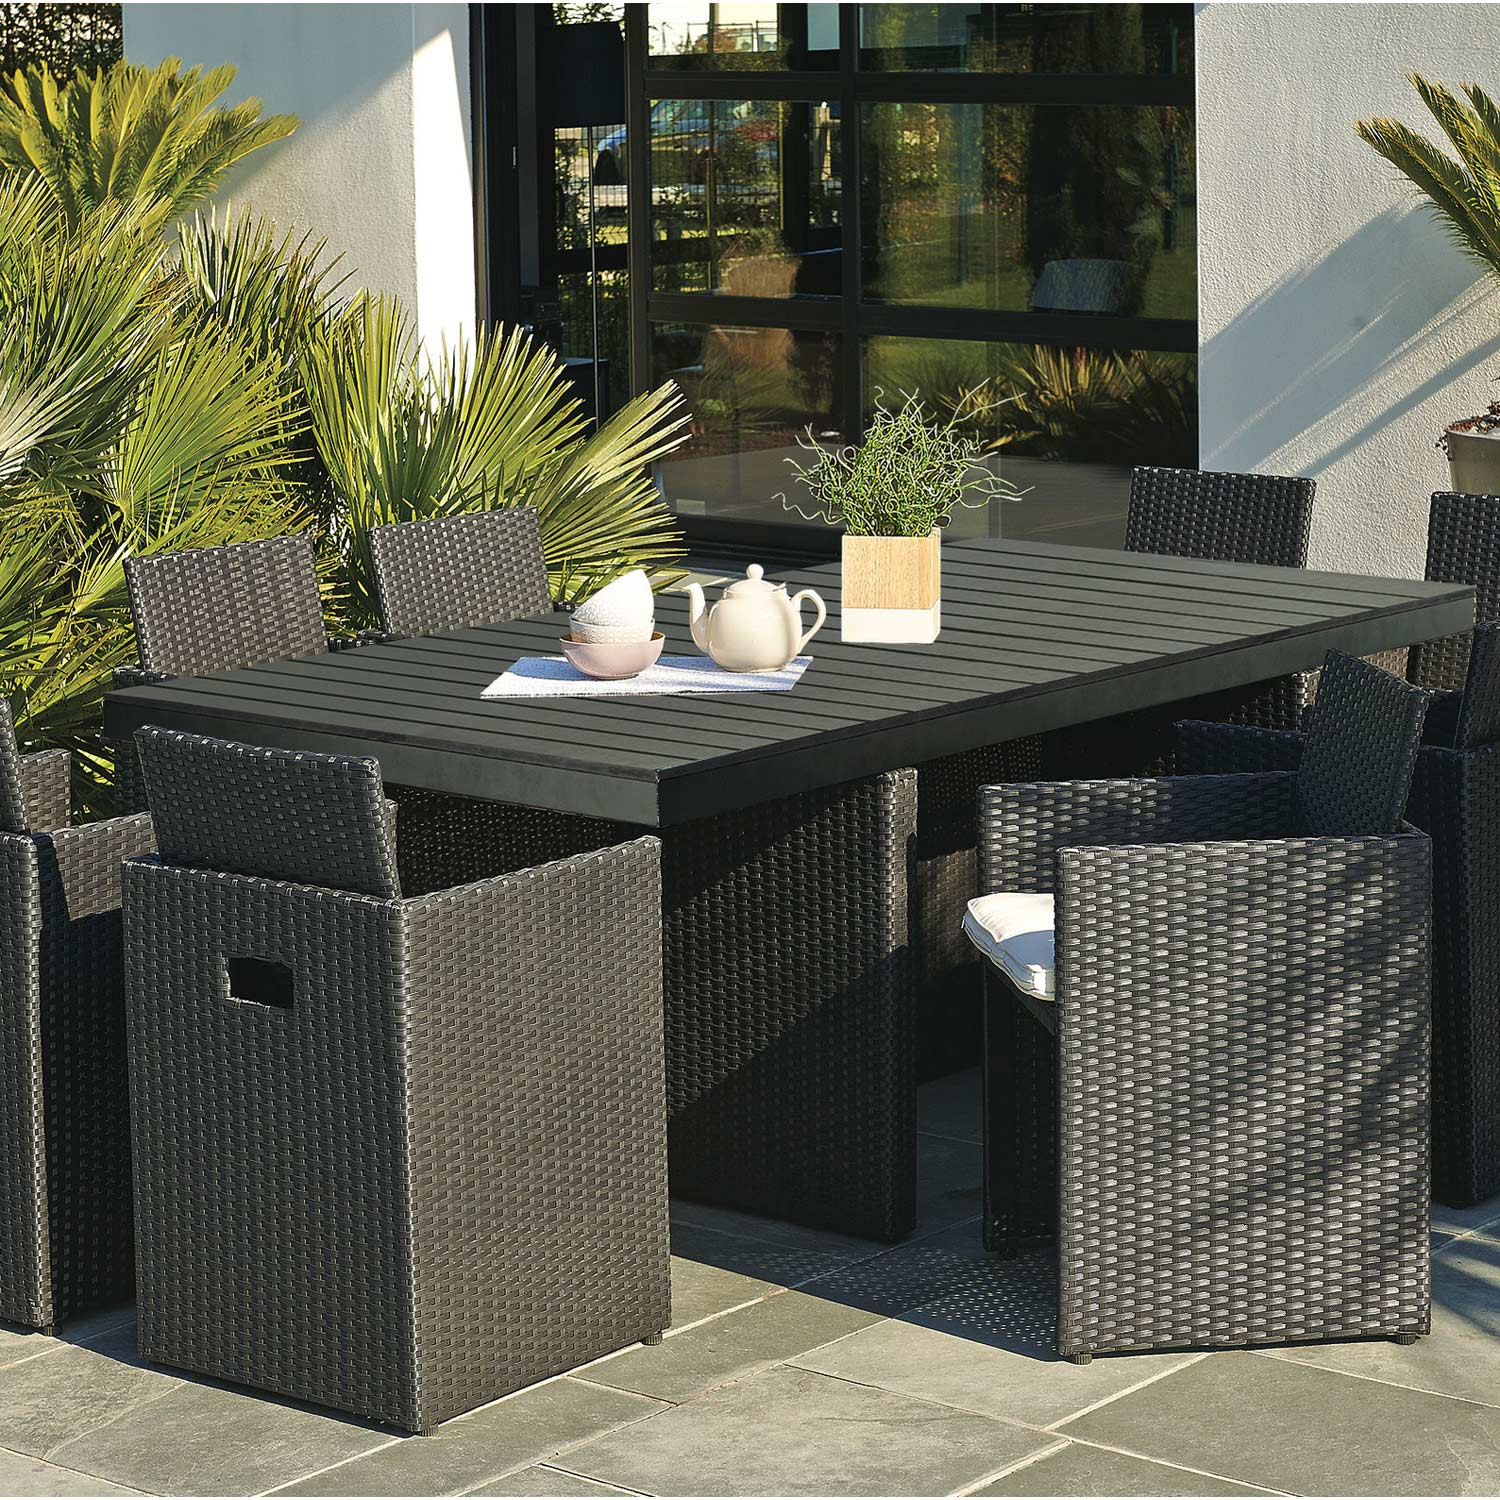 stunning salon de jardin bolzano noir images awesome. Black Bedroom Furniture Sets. Home Design Ideas